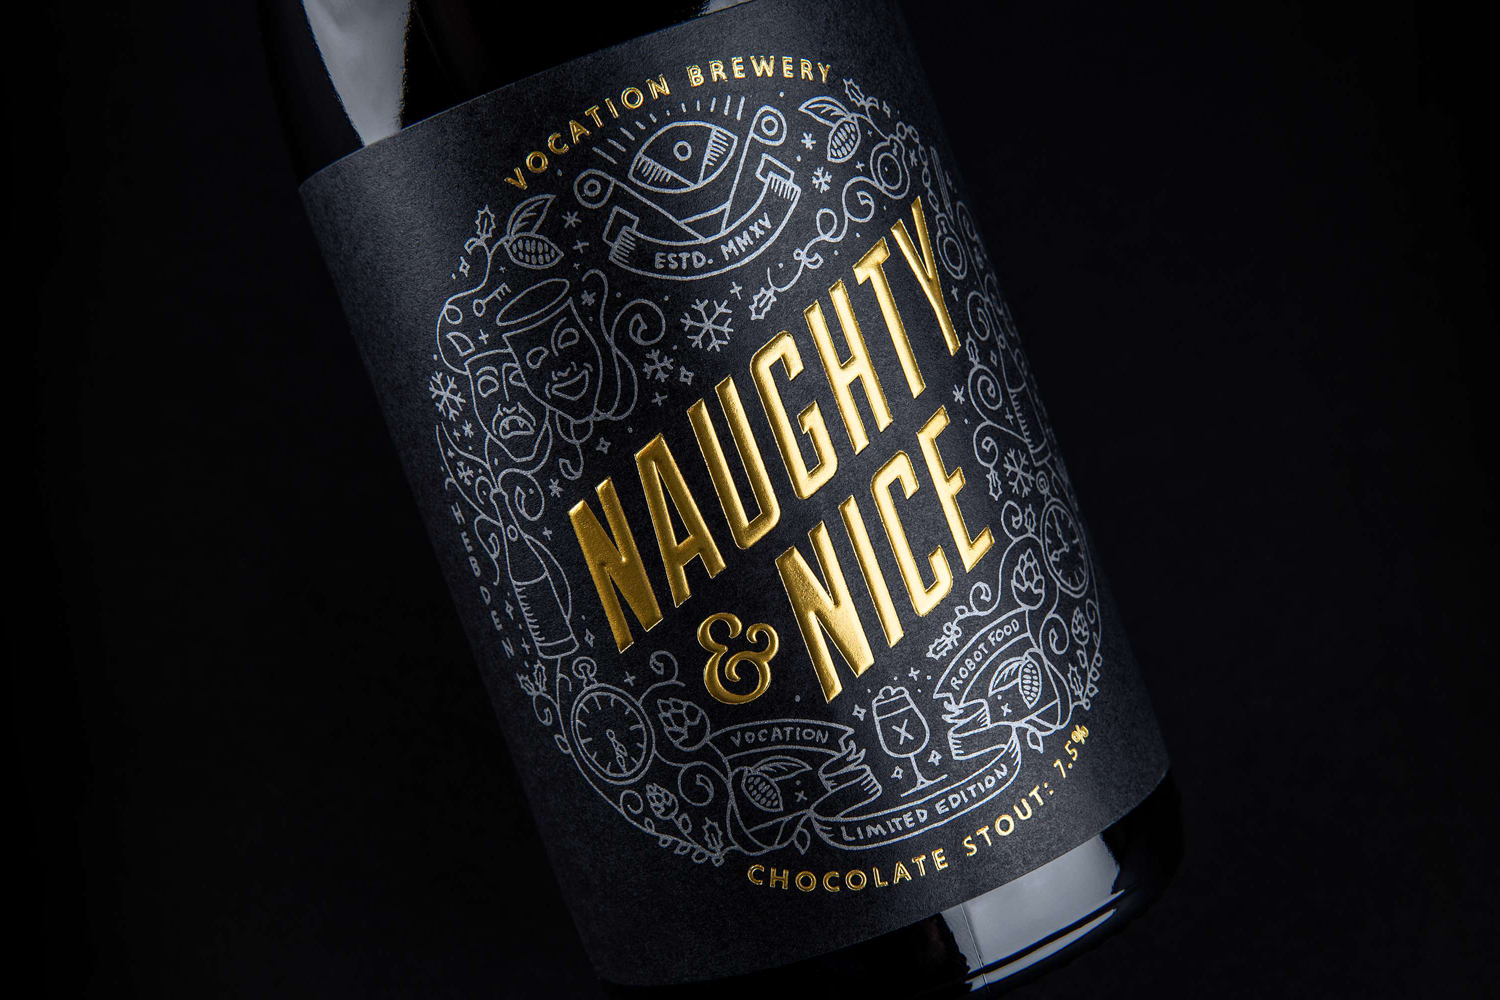 Package design for Vocation Brewery's Limited Edition Christmas Stout by graphic design studio Robot Food, United Kingdom